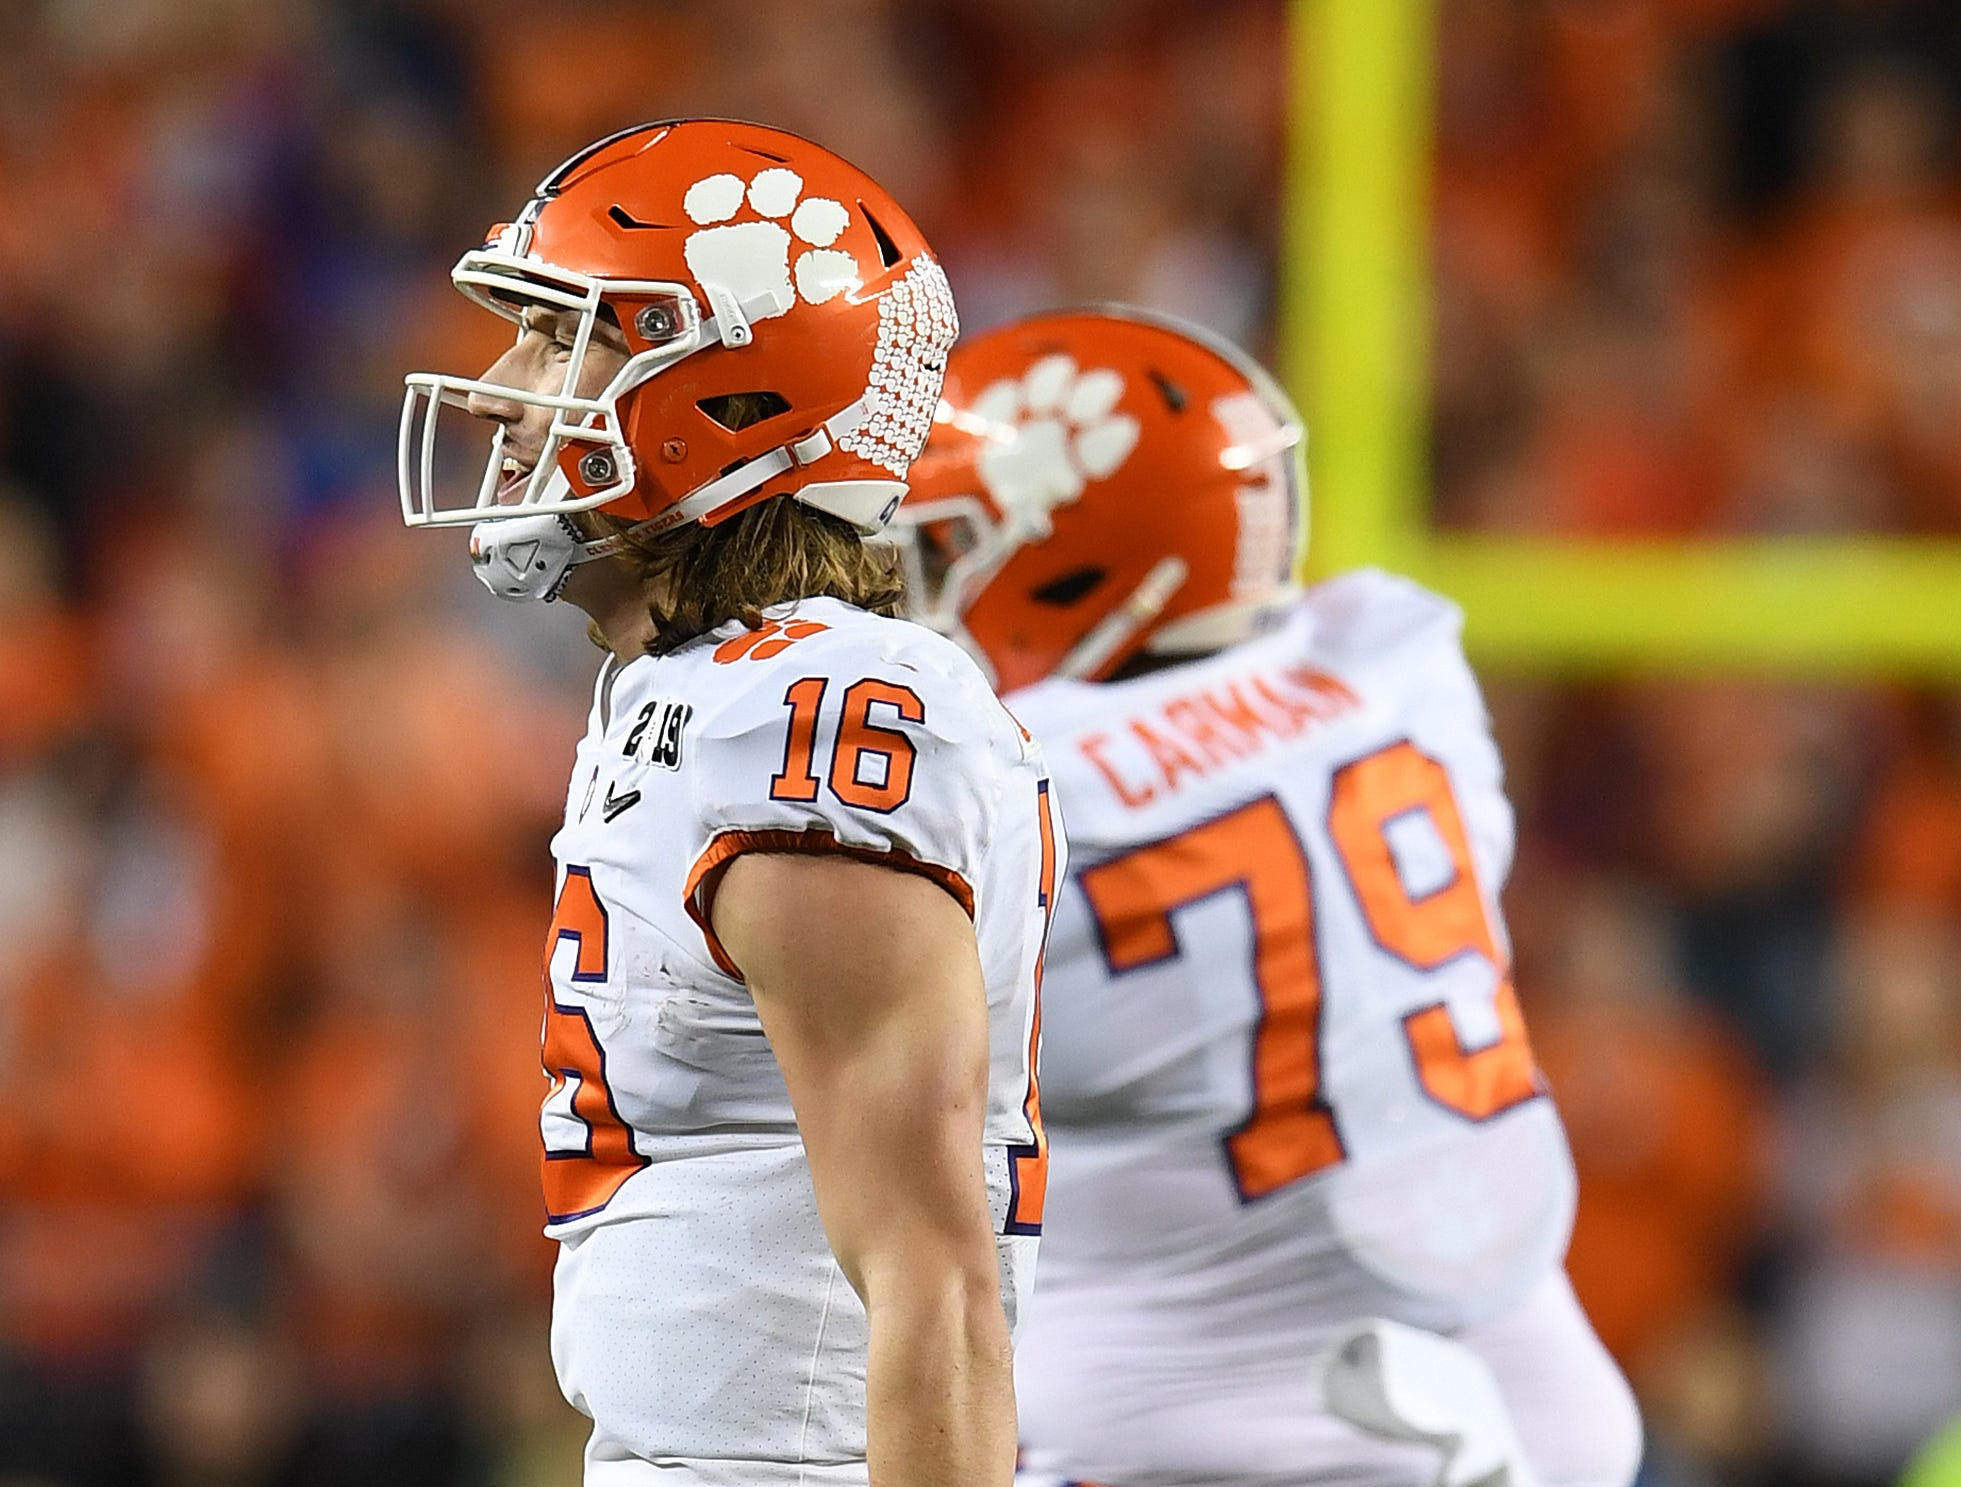 Clemson quarterback Trevor Lawrence (16) celebrates late in the 2nd half of the College Football National Championship at Levi's Stadium in Santa Clara, CA Monday, January 7, 2019.